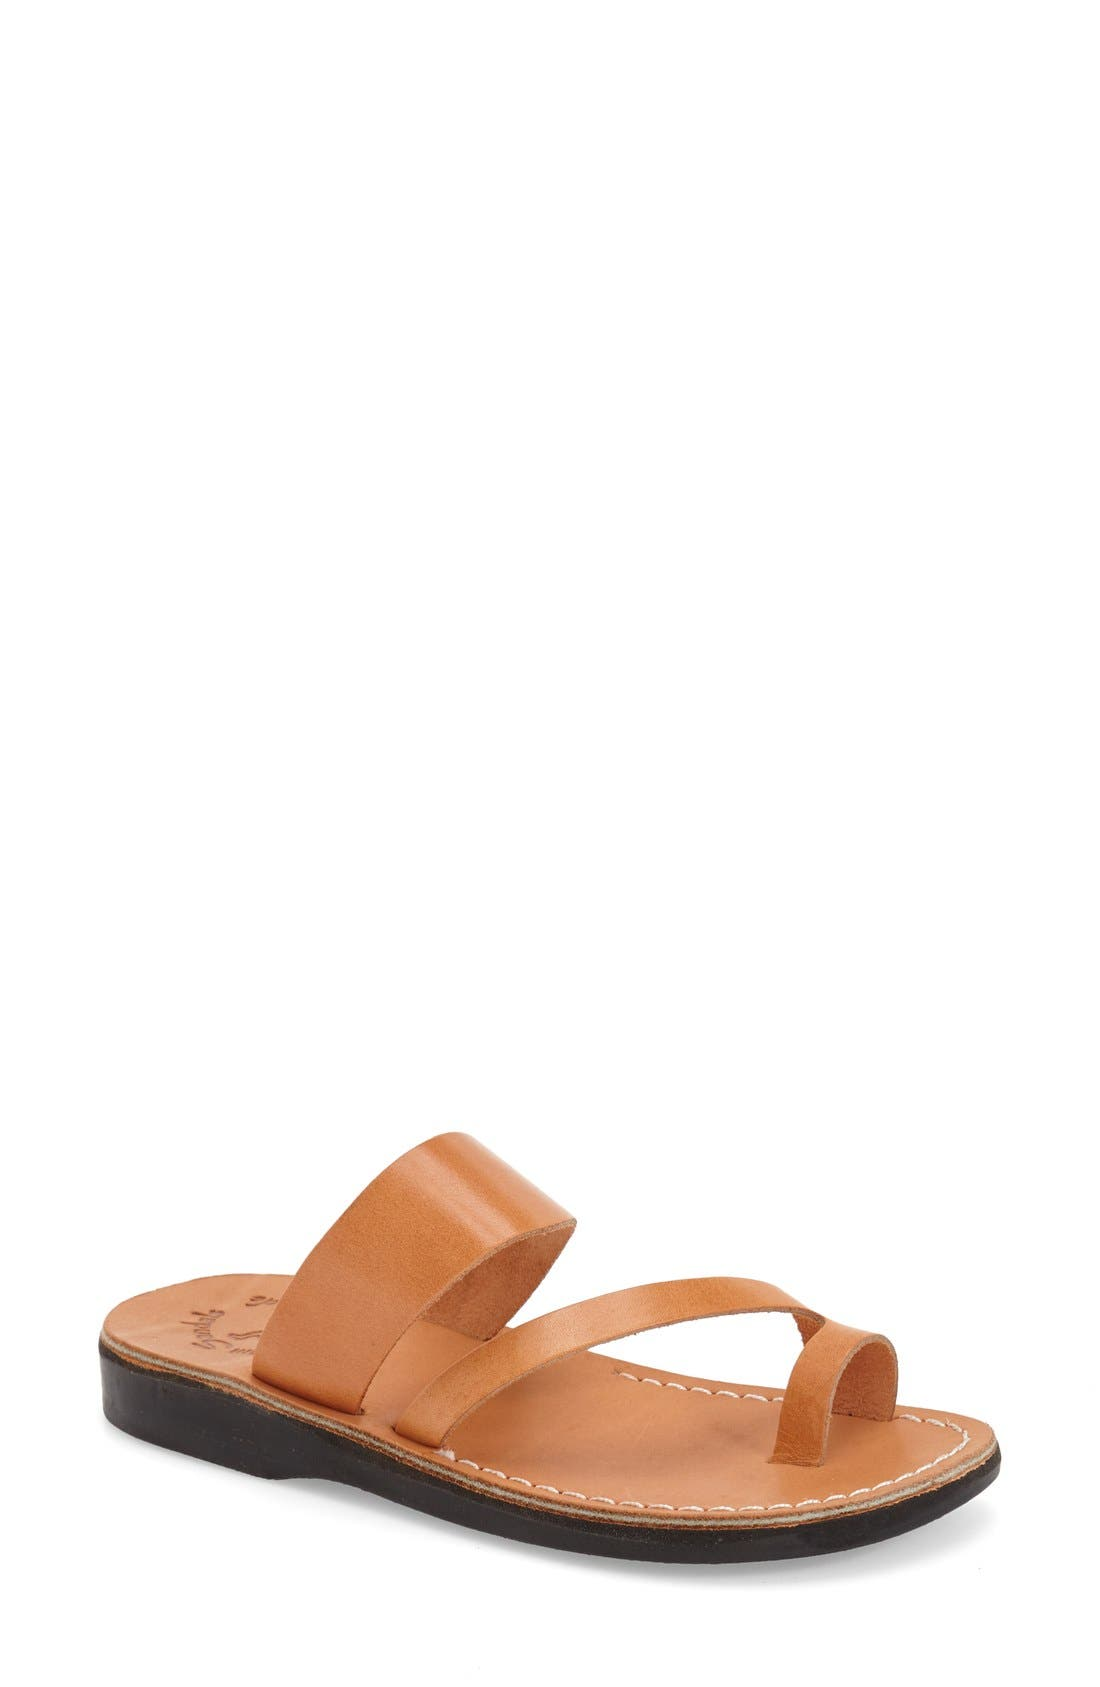 'Zohar' Leather Sandal,                             Main thumbnail 1, color,